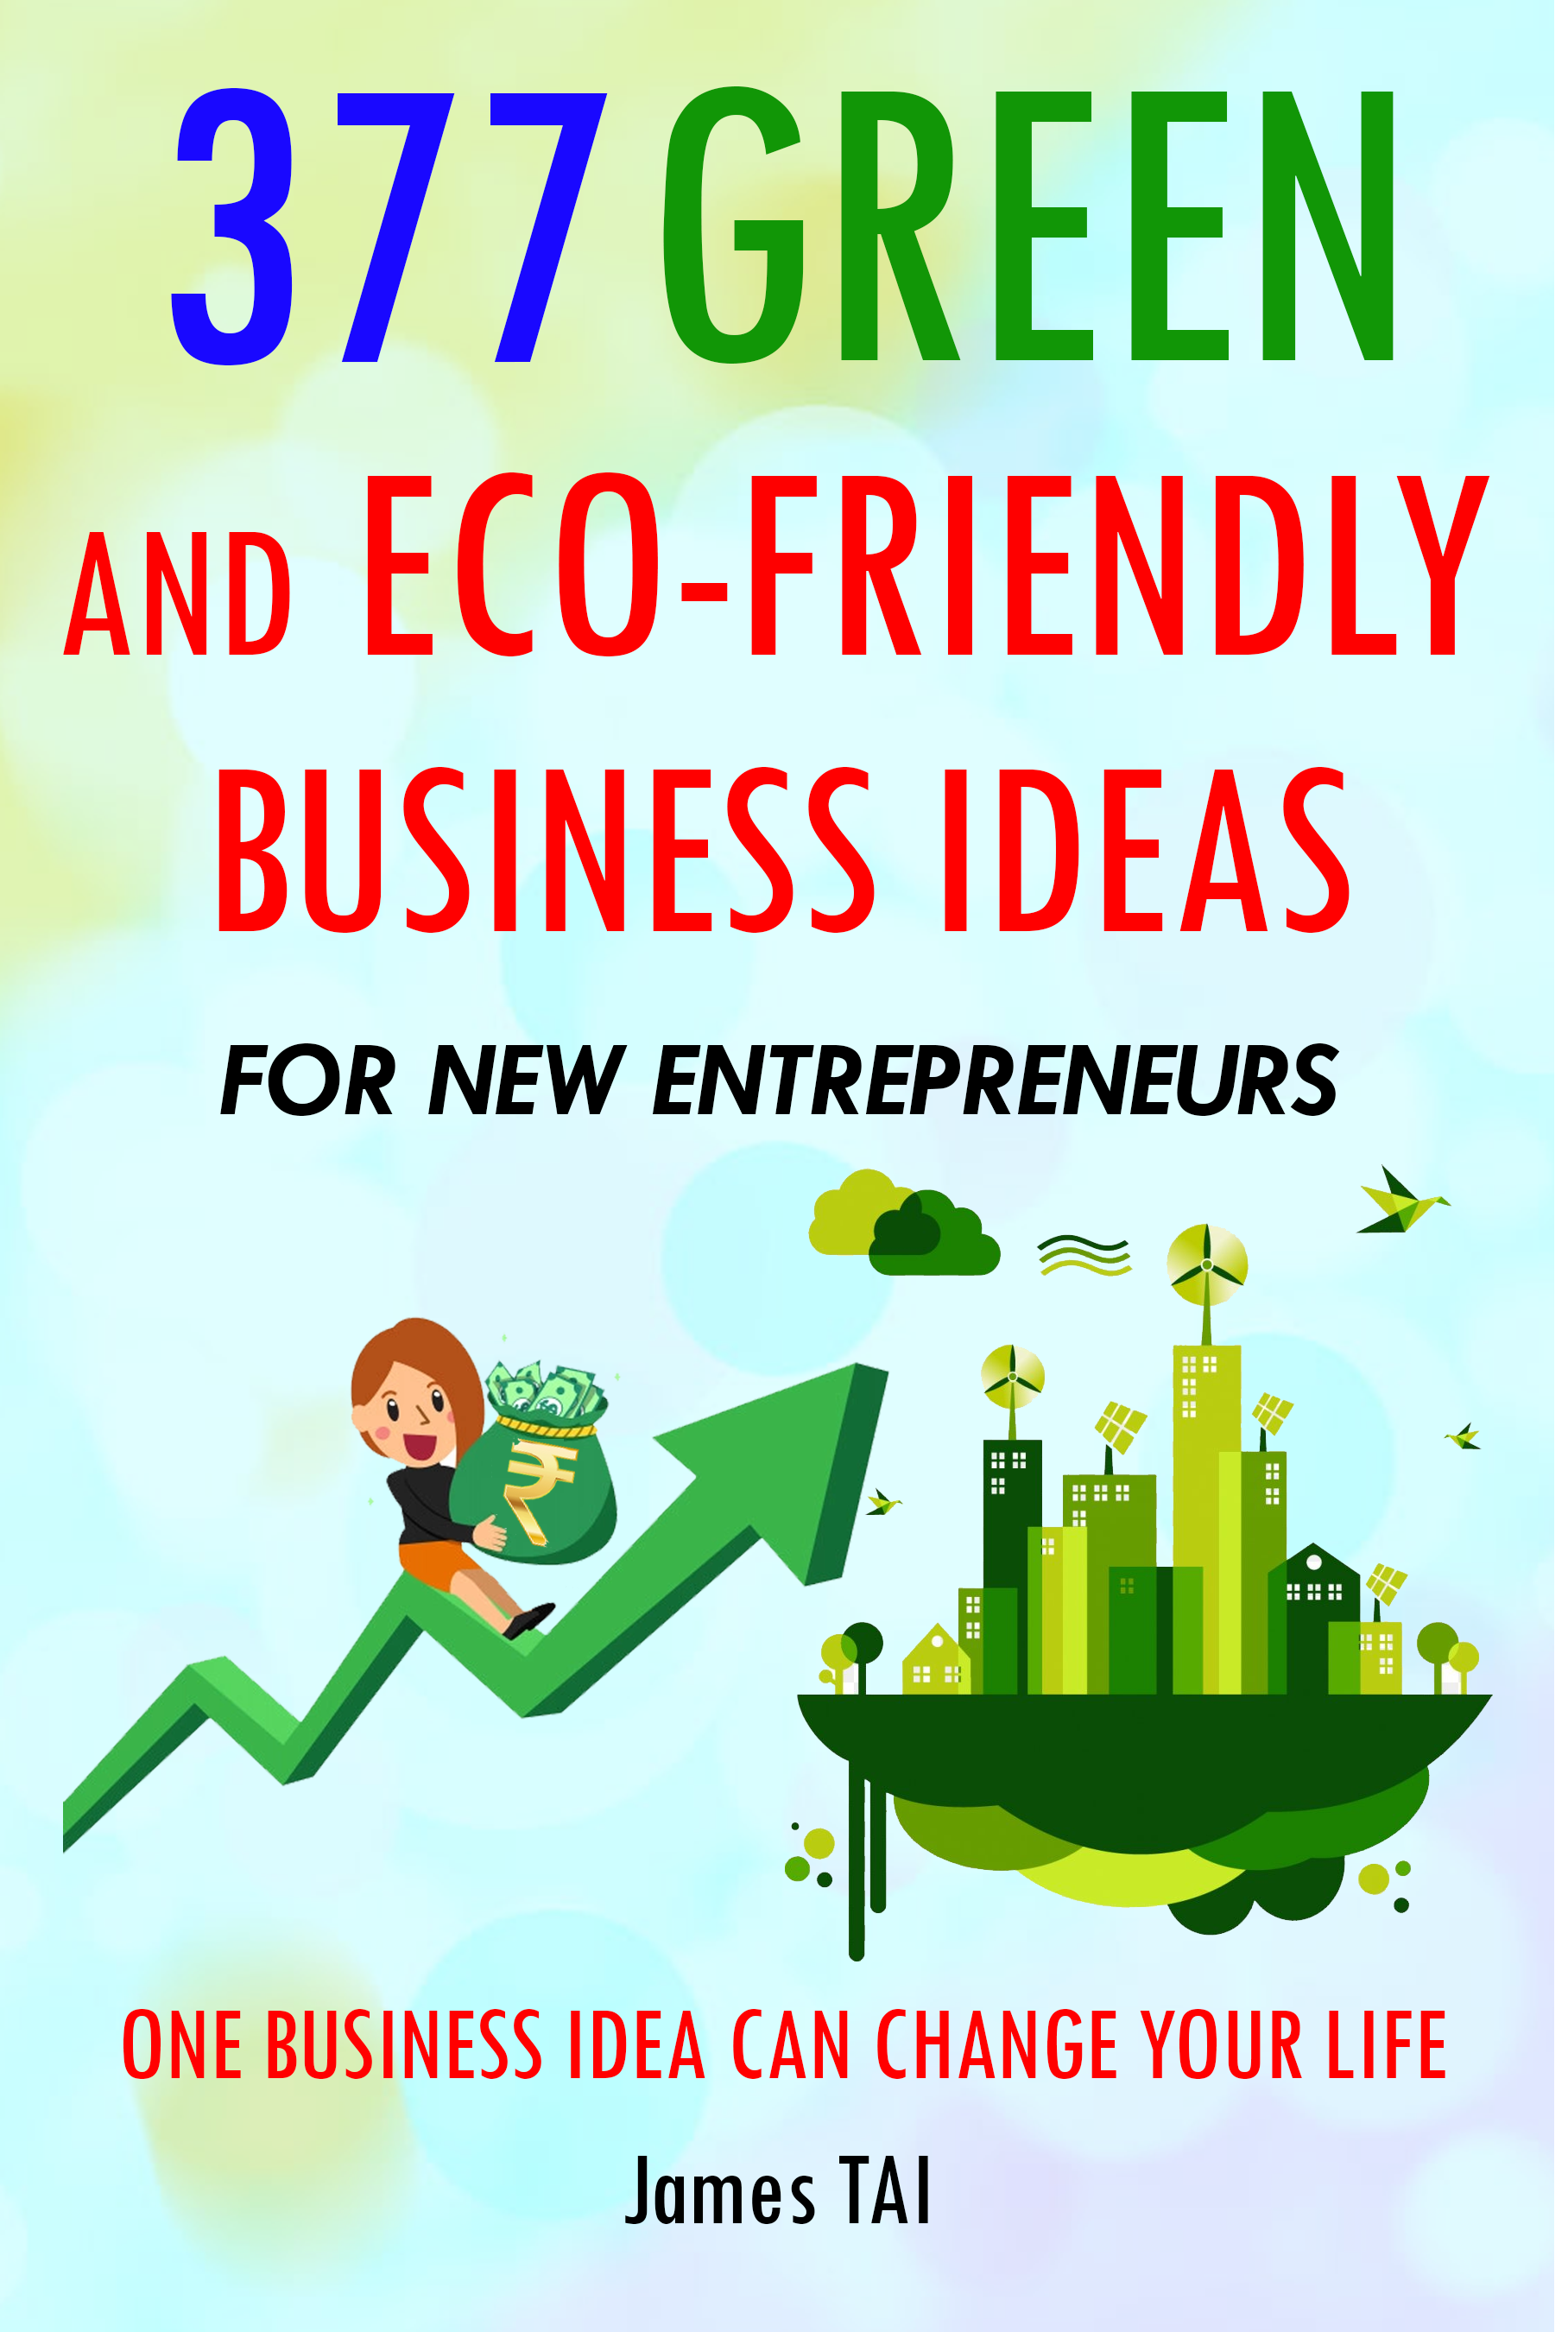 377 Green and Eco-Friendly Business Ideas For New Entrepreneurs